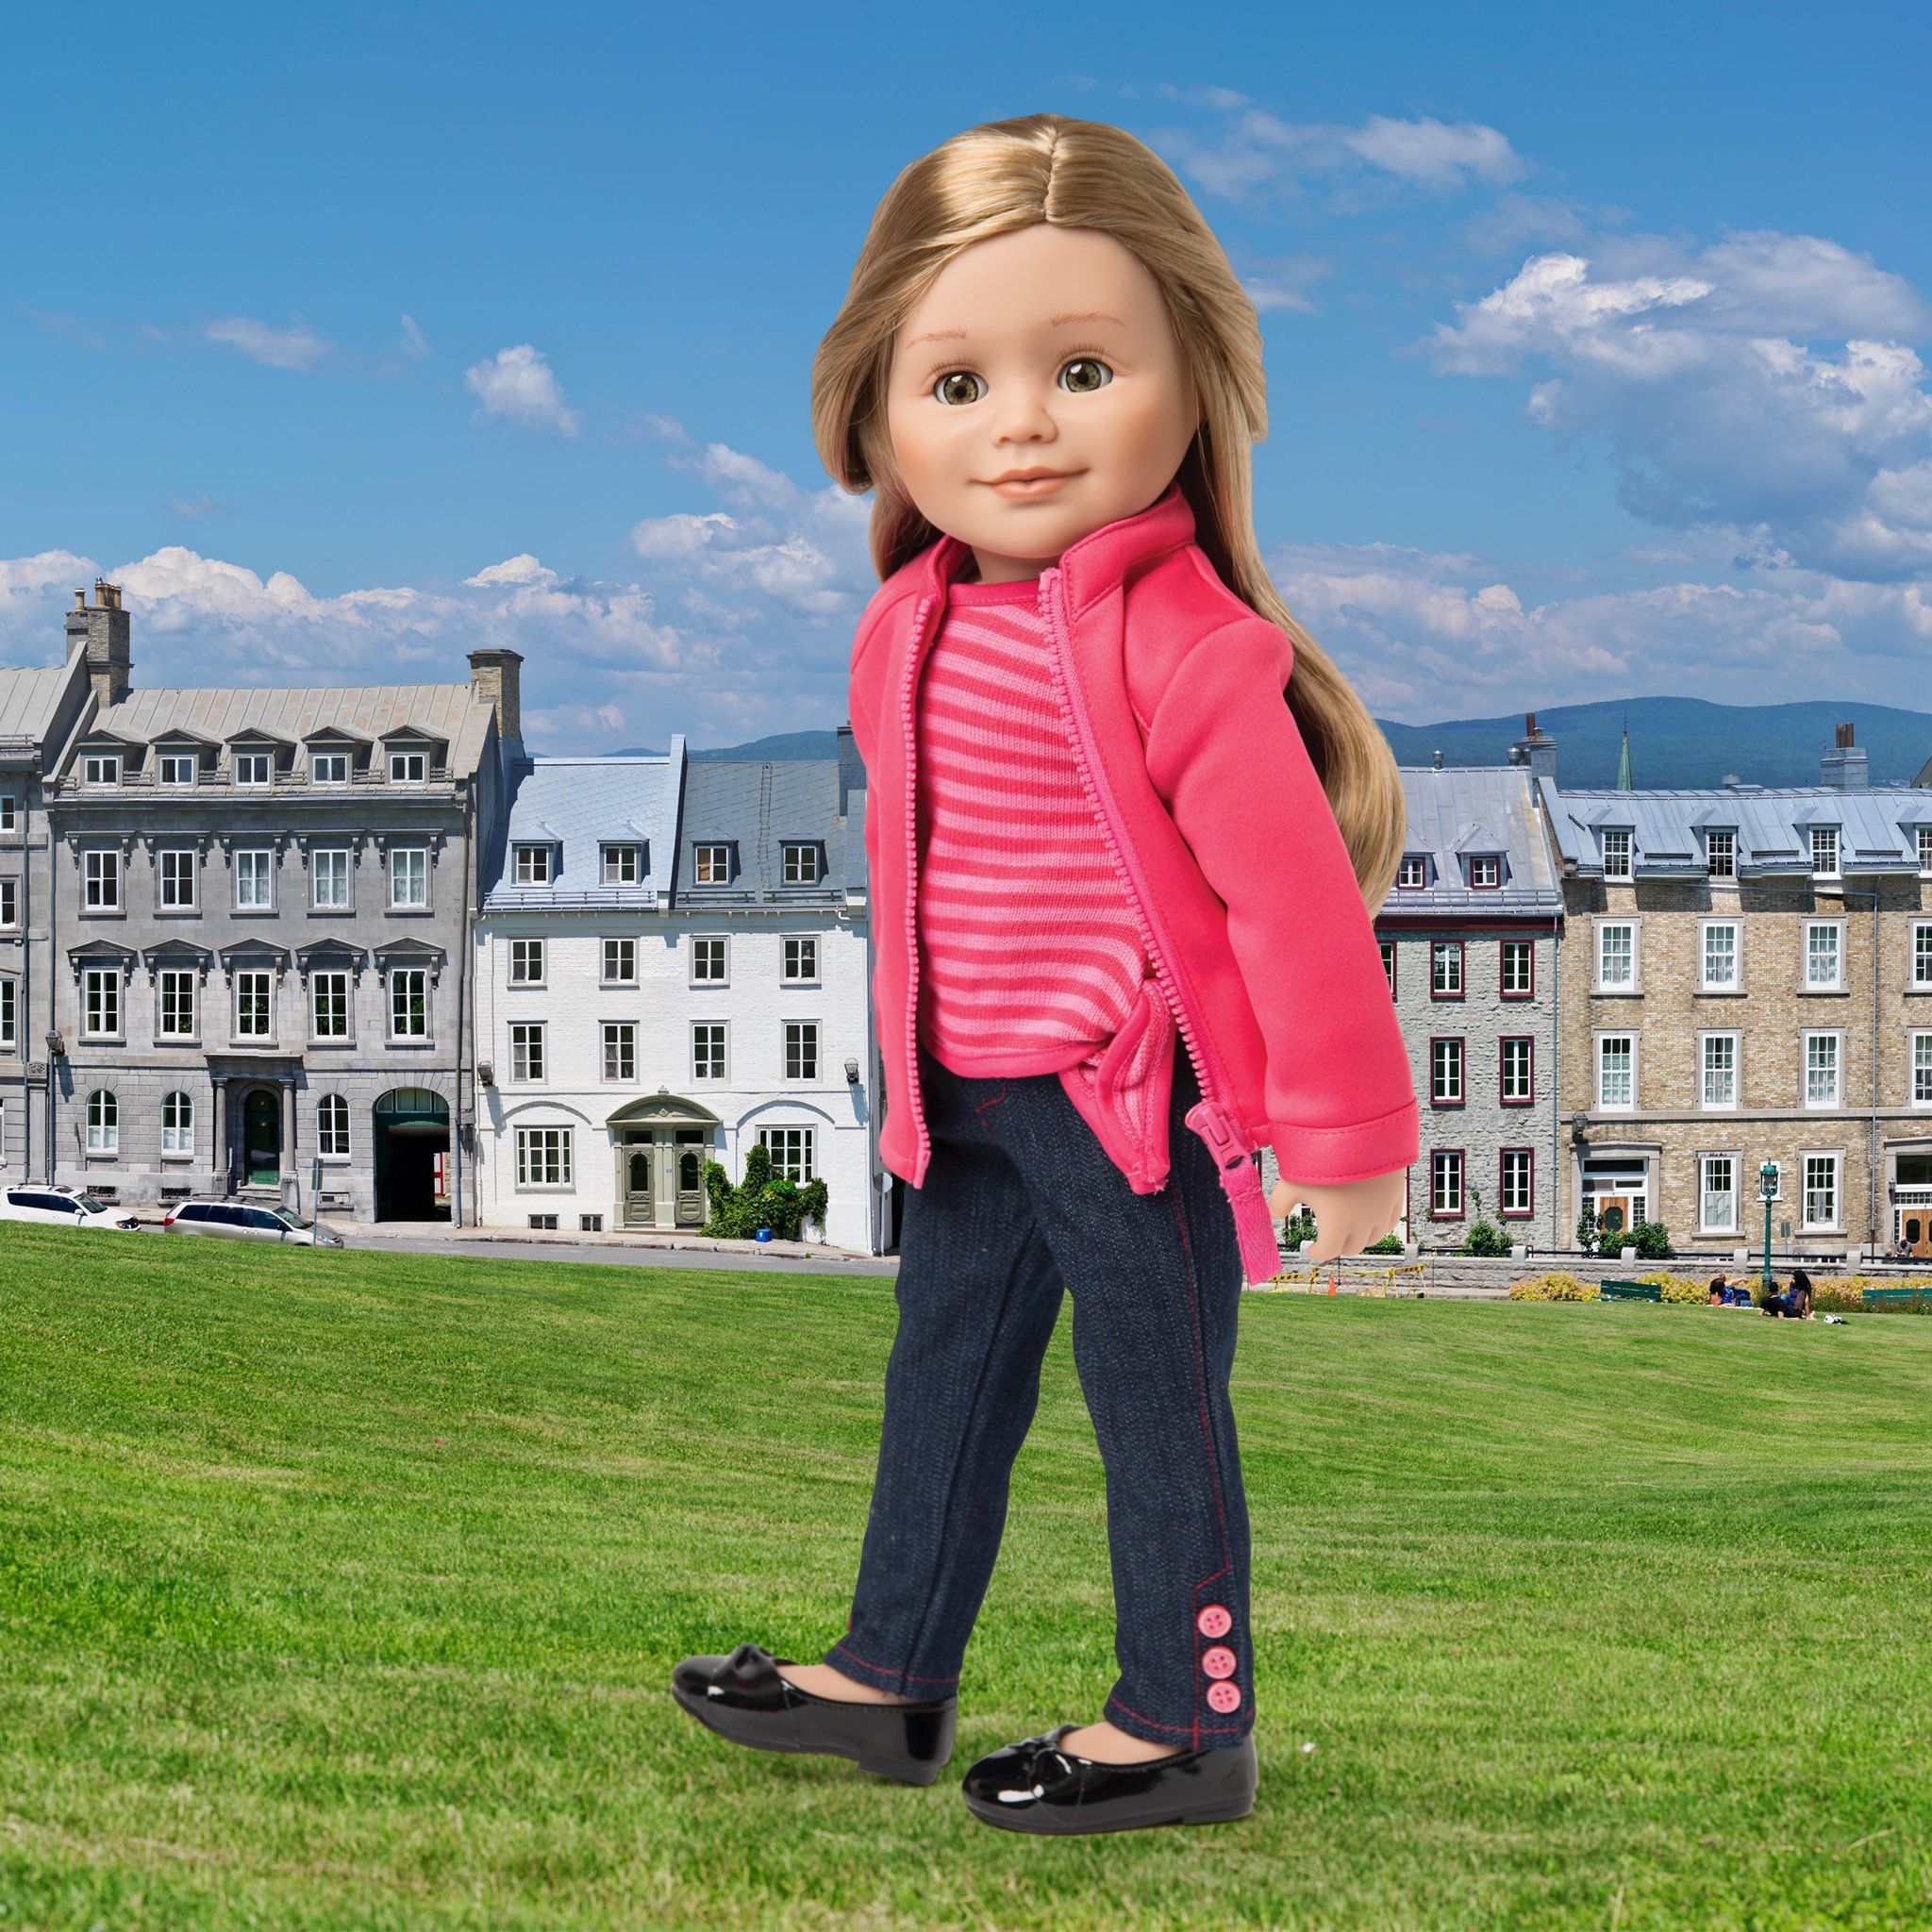 Cirque du Monde pink zip-up sweater, pink striped side-tie shirt, skinny jeans with ankle buttons shown on KL1 Leonie doll in Quebec background. Fits all 18 inch dolls.